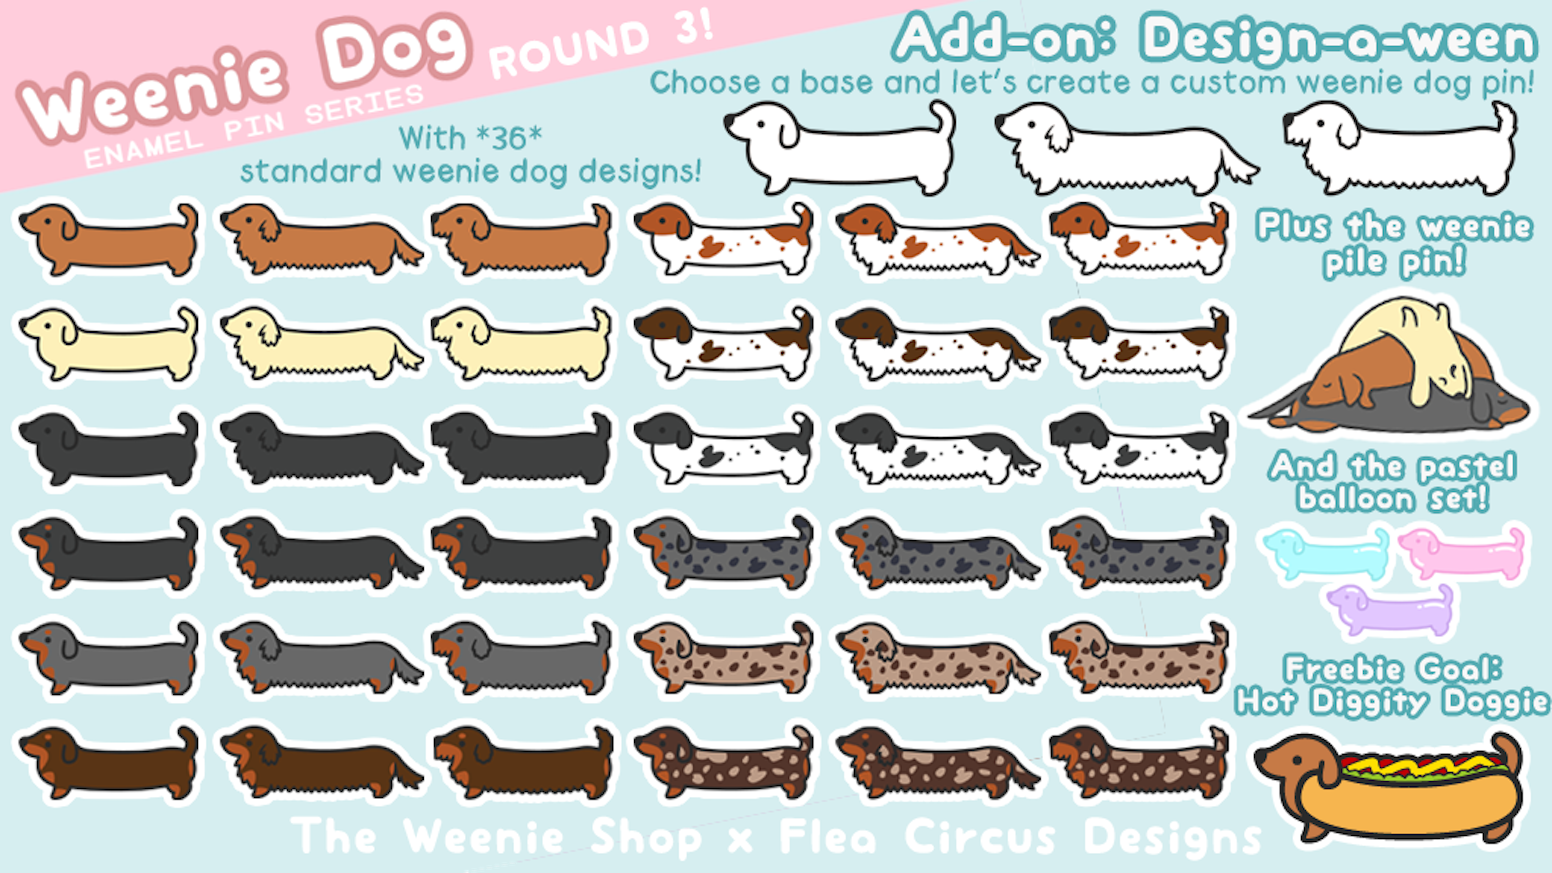 Let's make more weenie dog enamel pins - now with more designs! A dachshund for everyone~